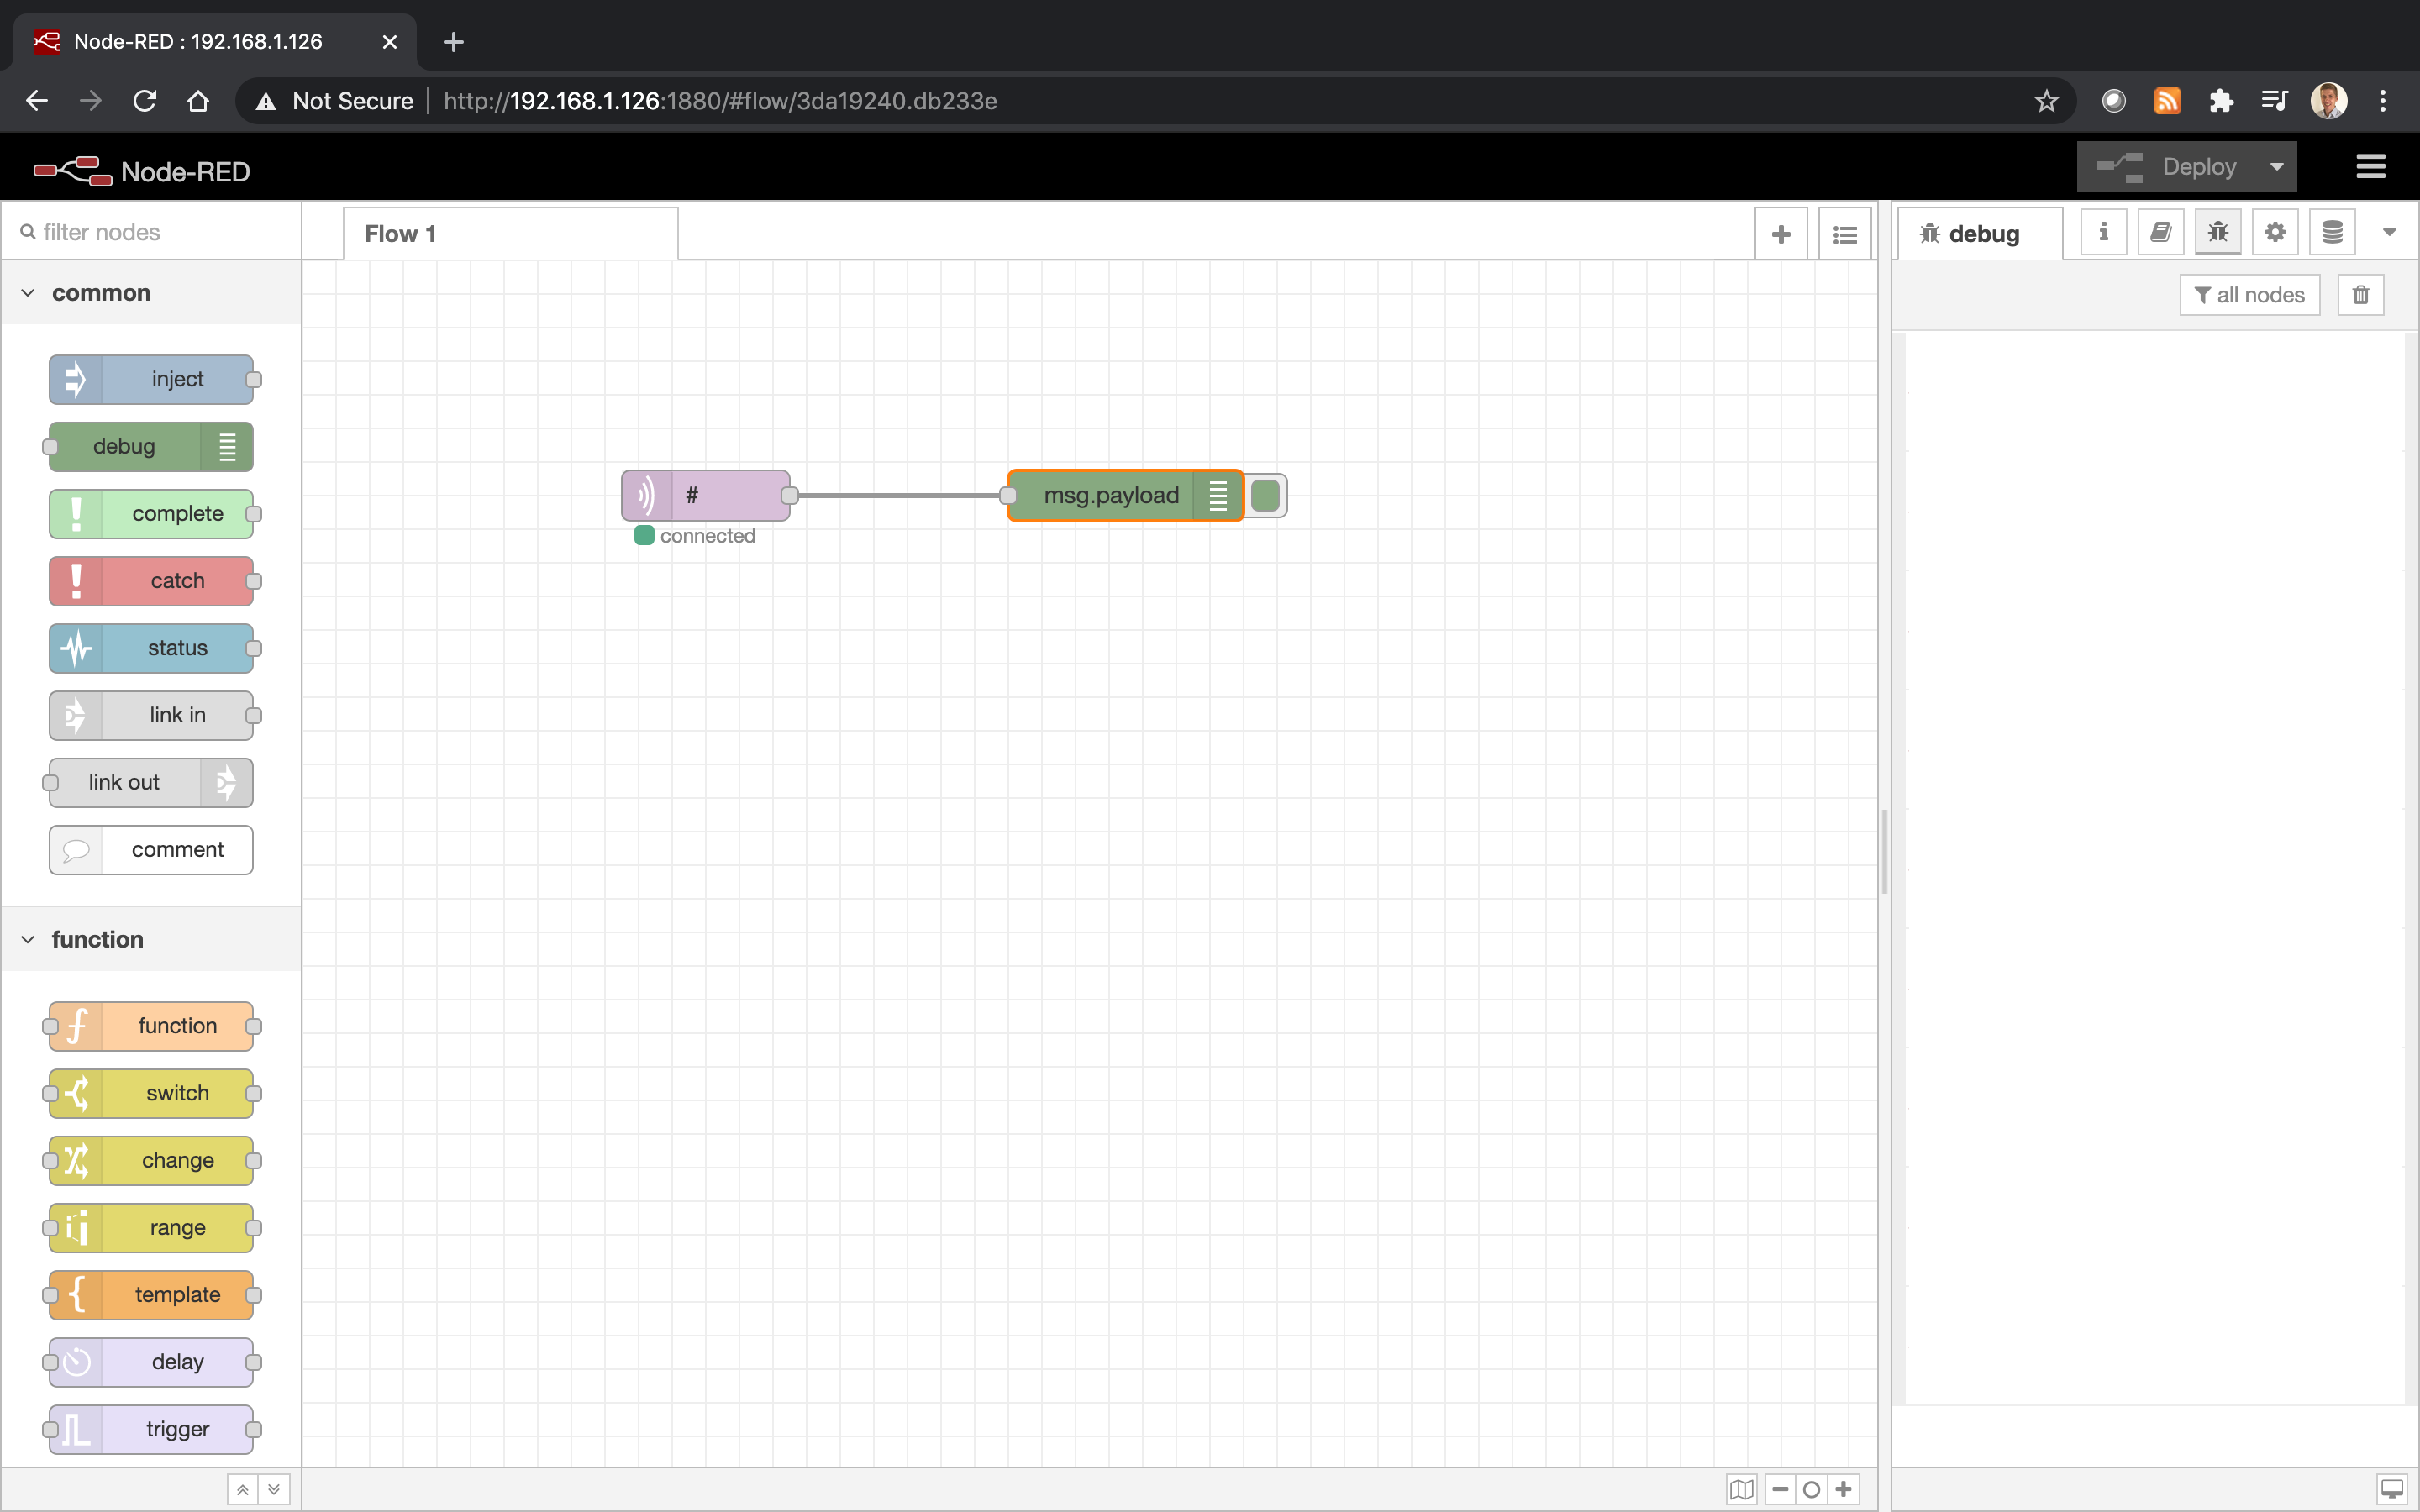 05-Node-RED-mqtt+debug-out-empty.png